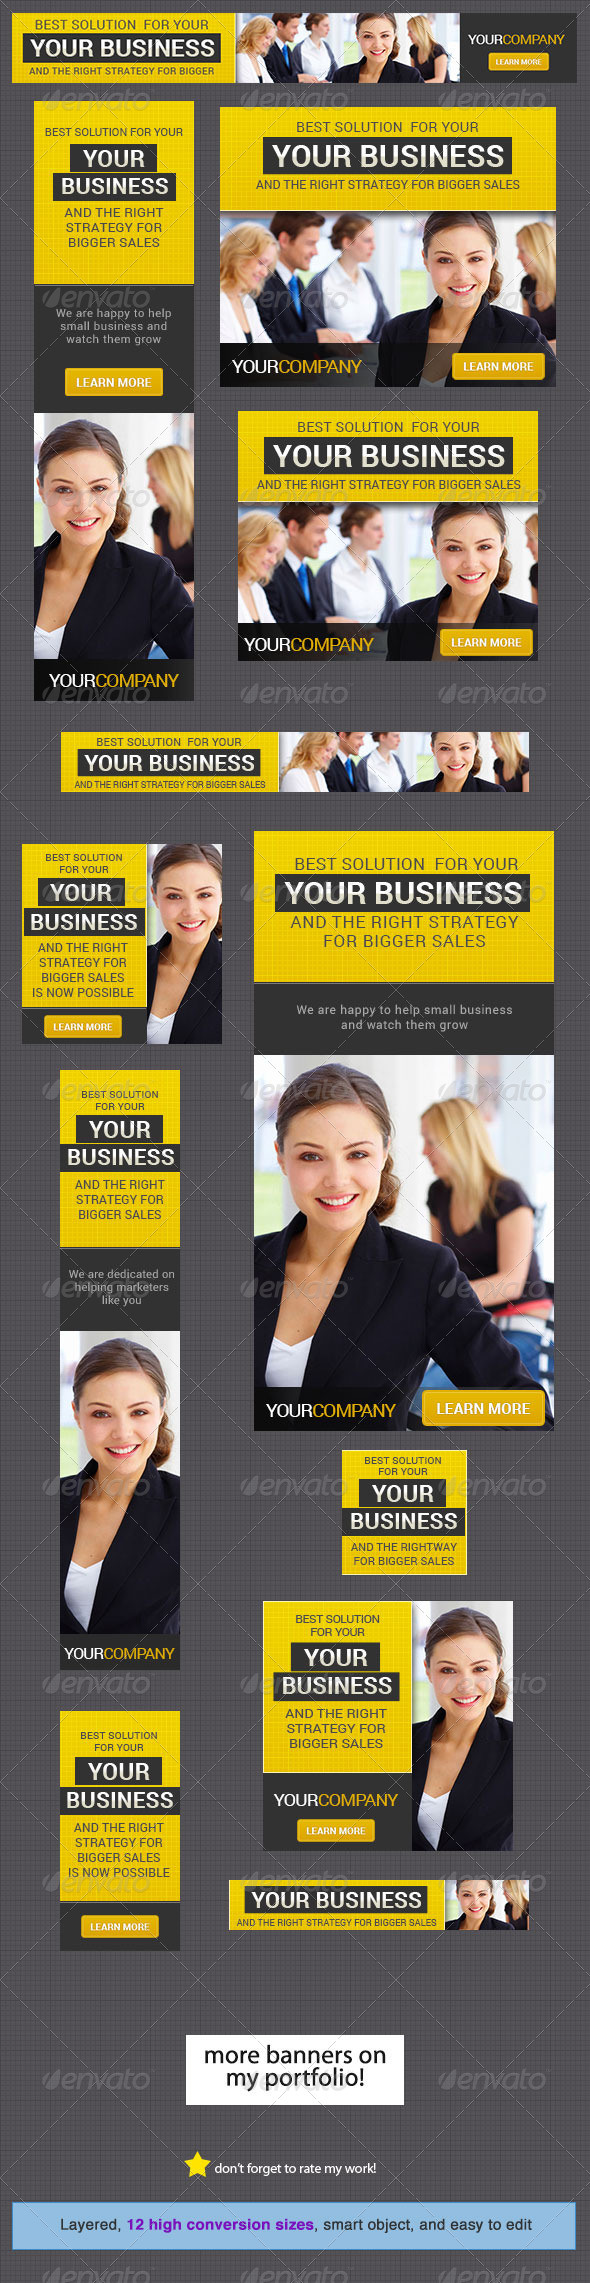 GraphicRiver Corporate Banner Design Template 7 4445877